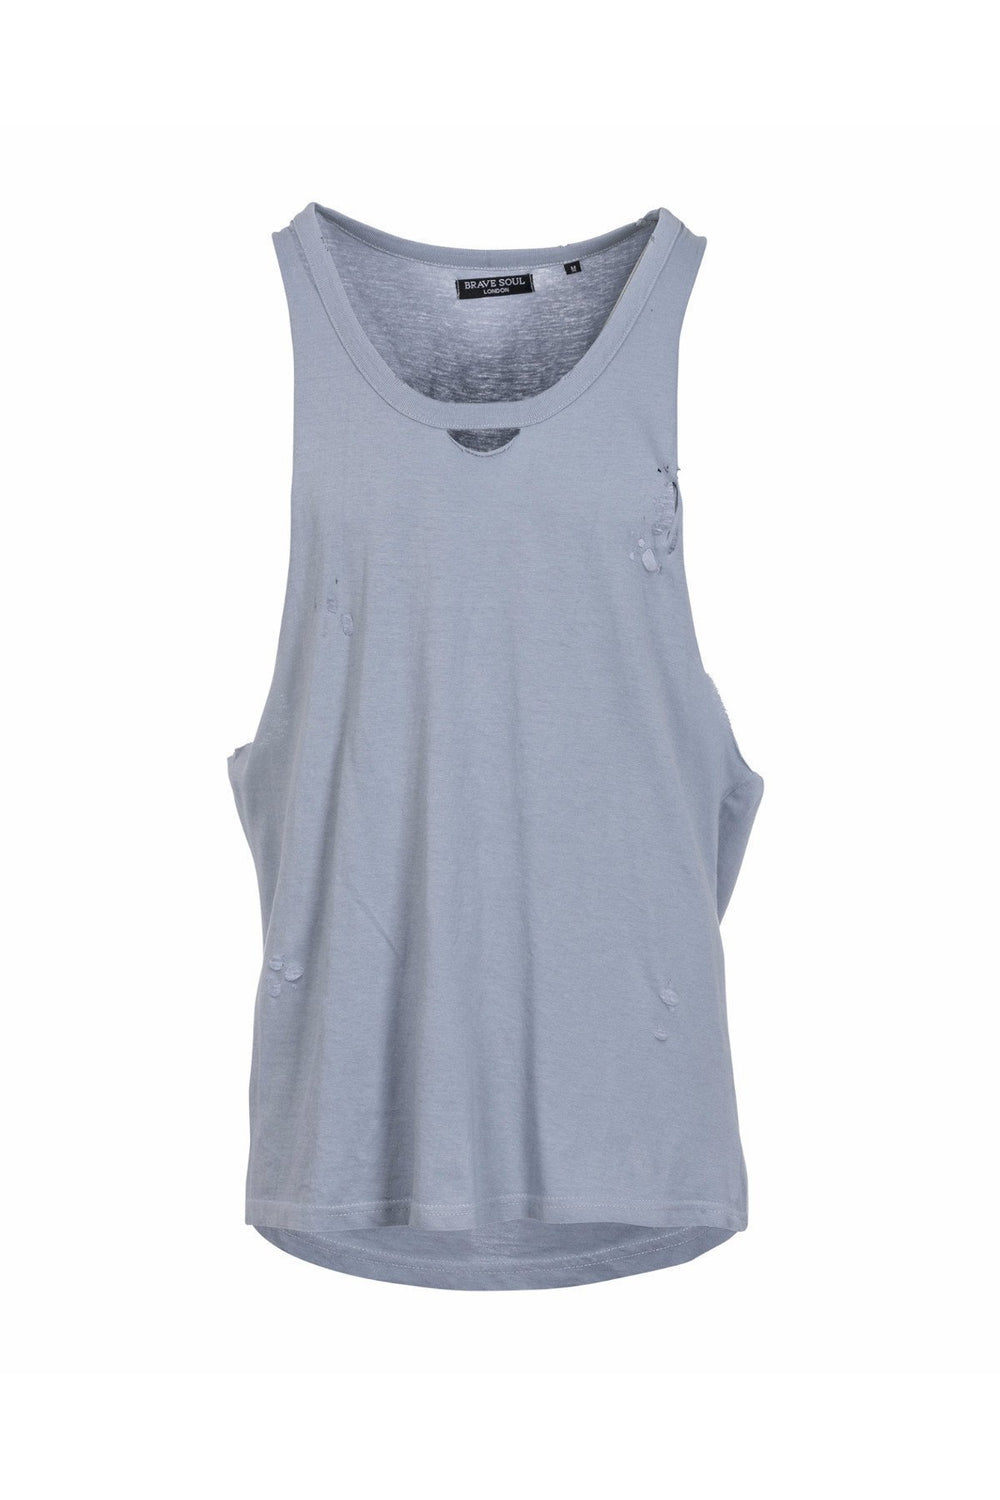 Vests - Destroyed Vest Dusty Blue